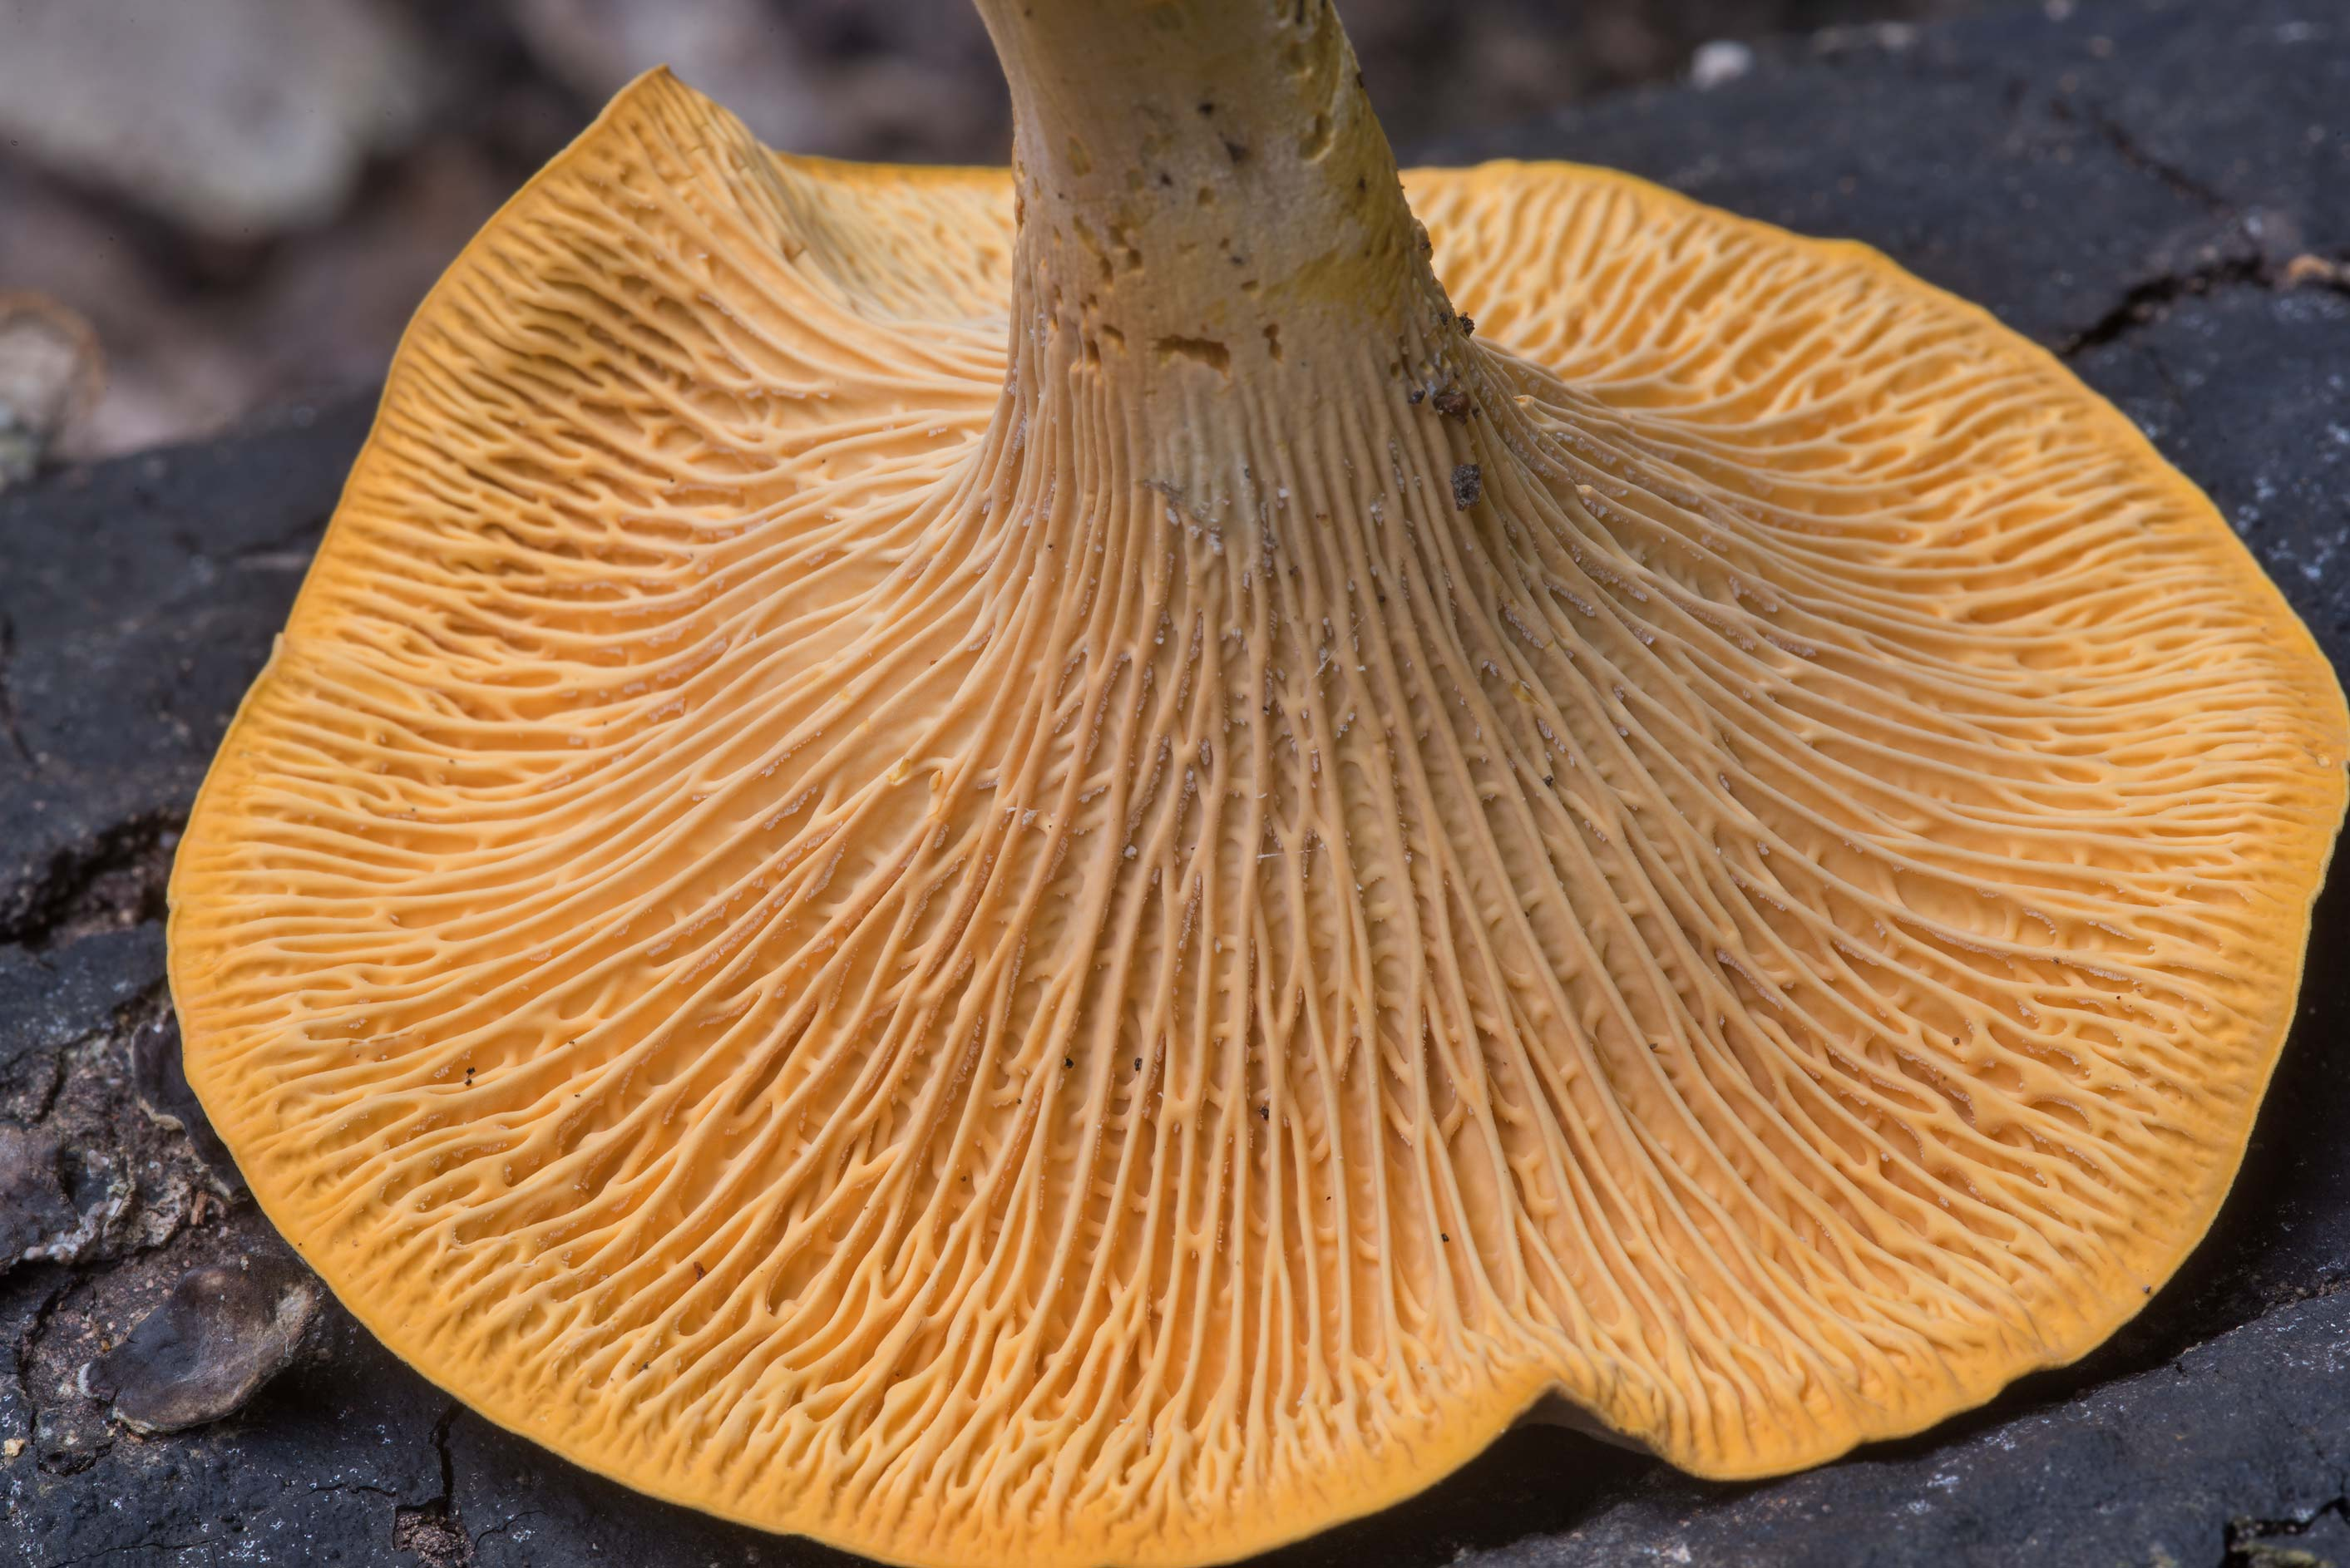 Gills of a large chanterelle mushroom...Creek Park. College Station, Texas